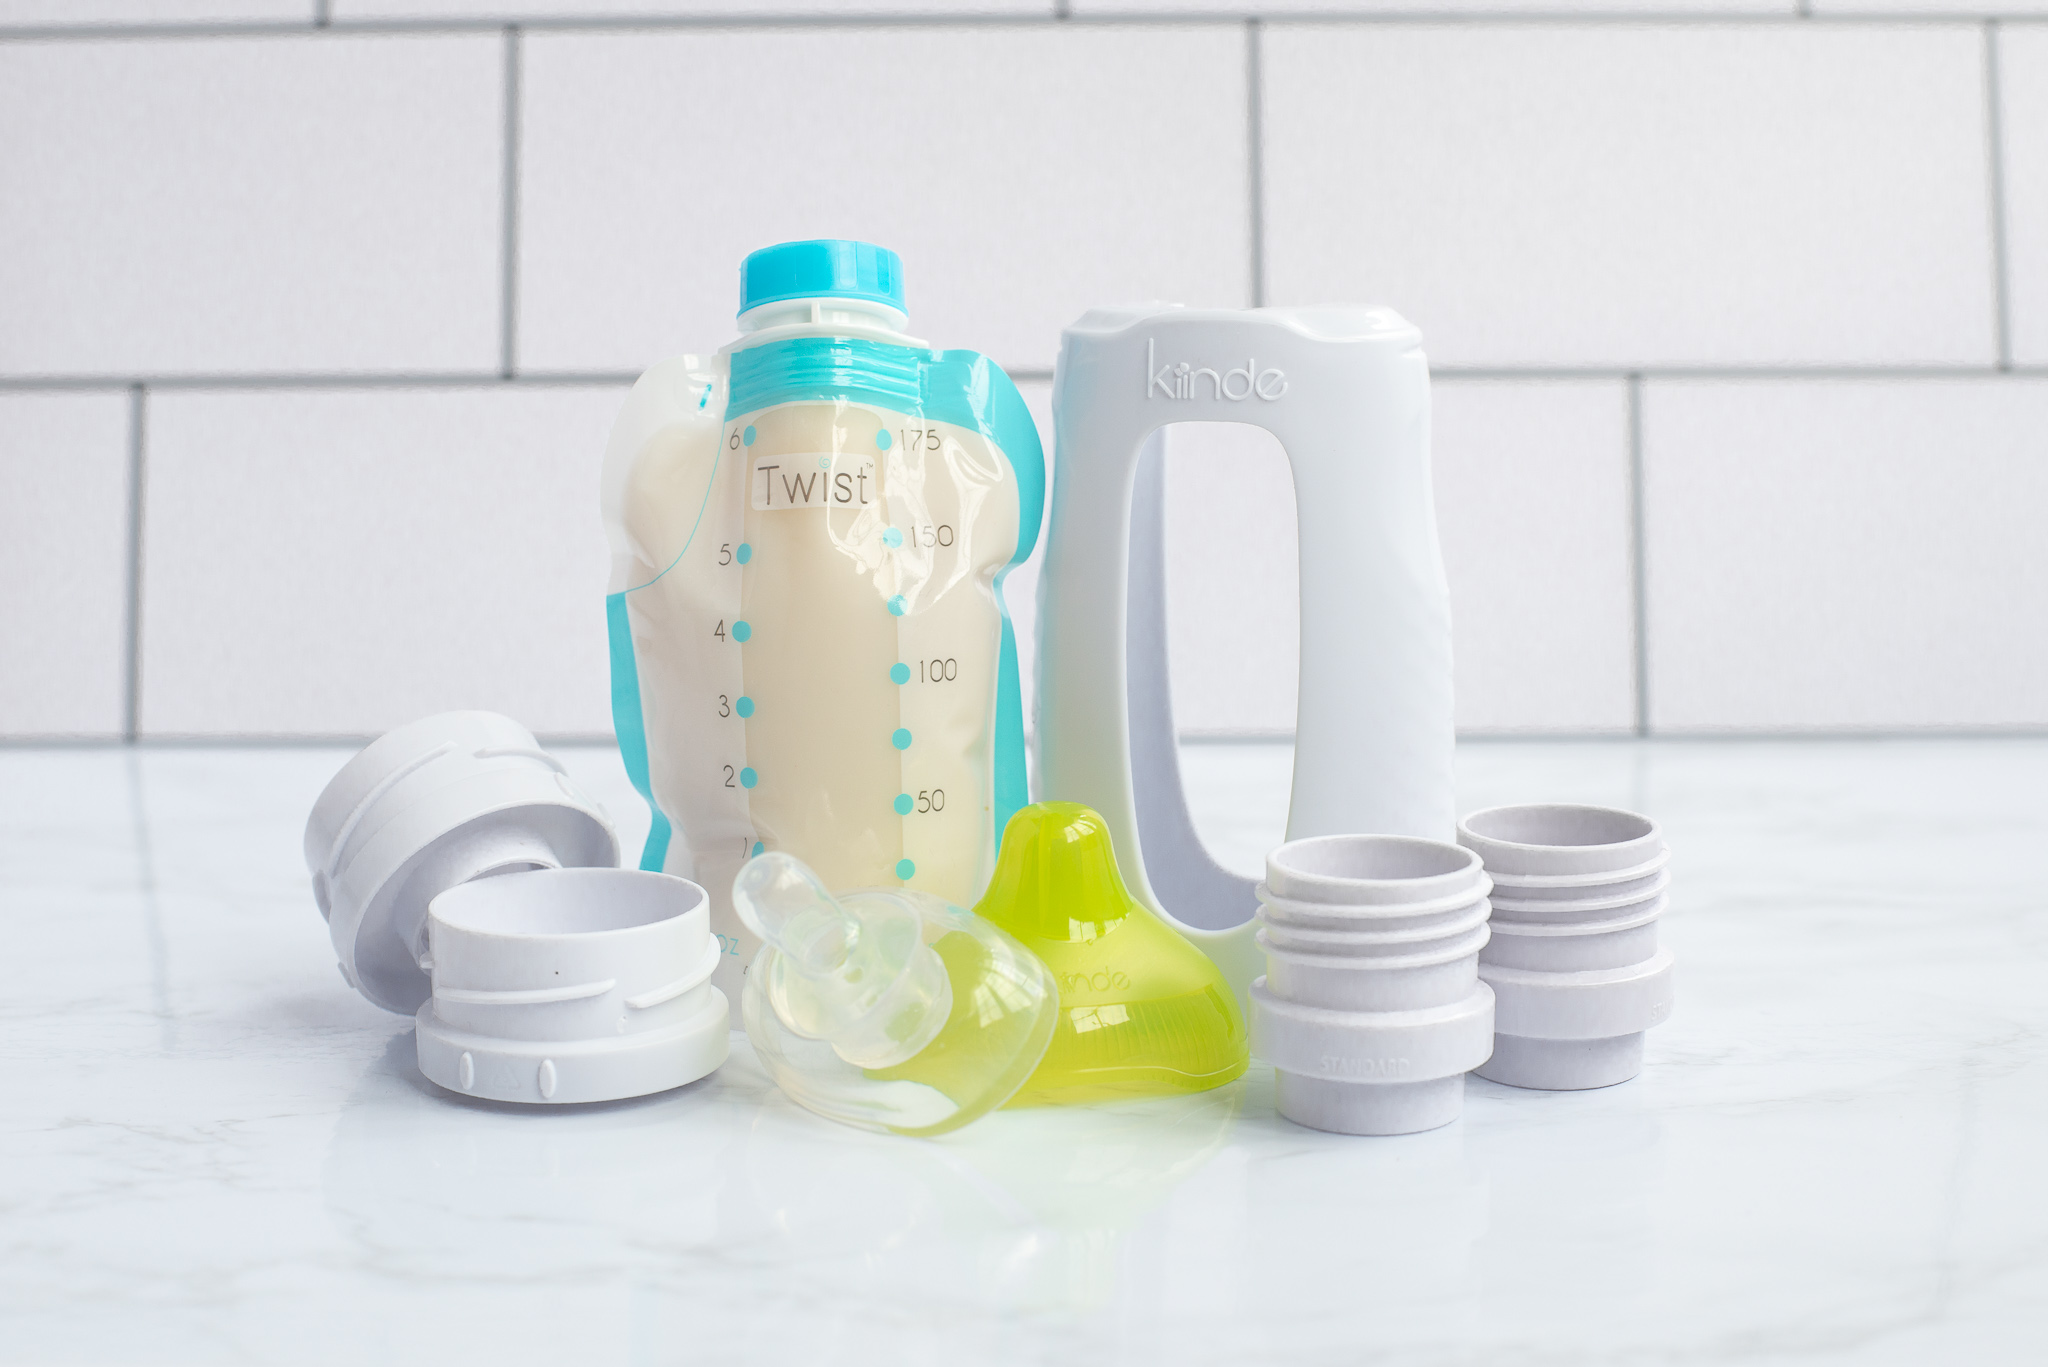 Kiinde Starter Set - The Kiinde feeding system takes you from pumping to bottle to feeding and storage without the need to transfer from one container to another. Learn more about how they work on the Kiinde website found here.